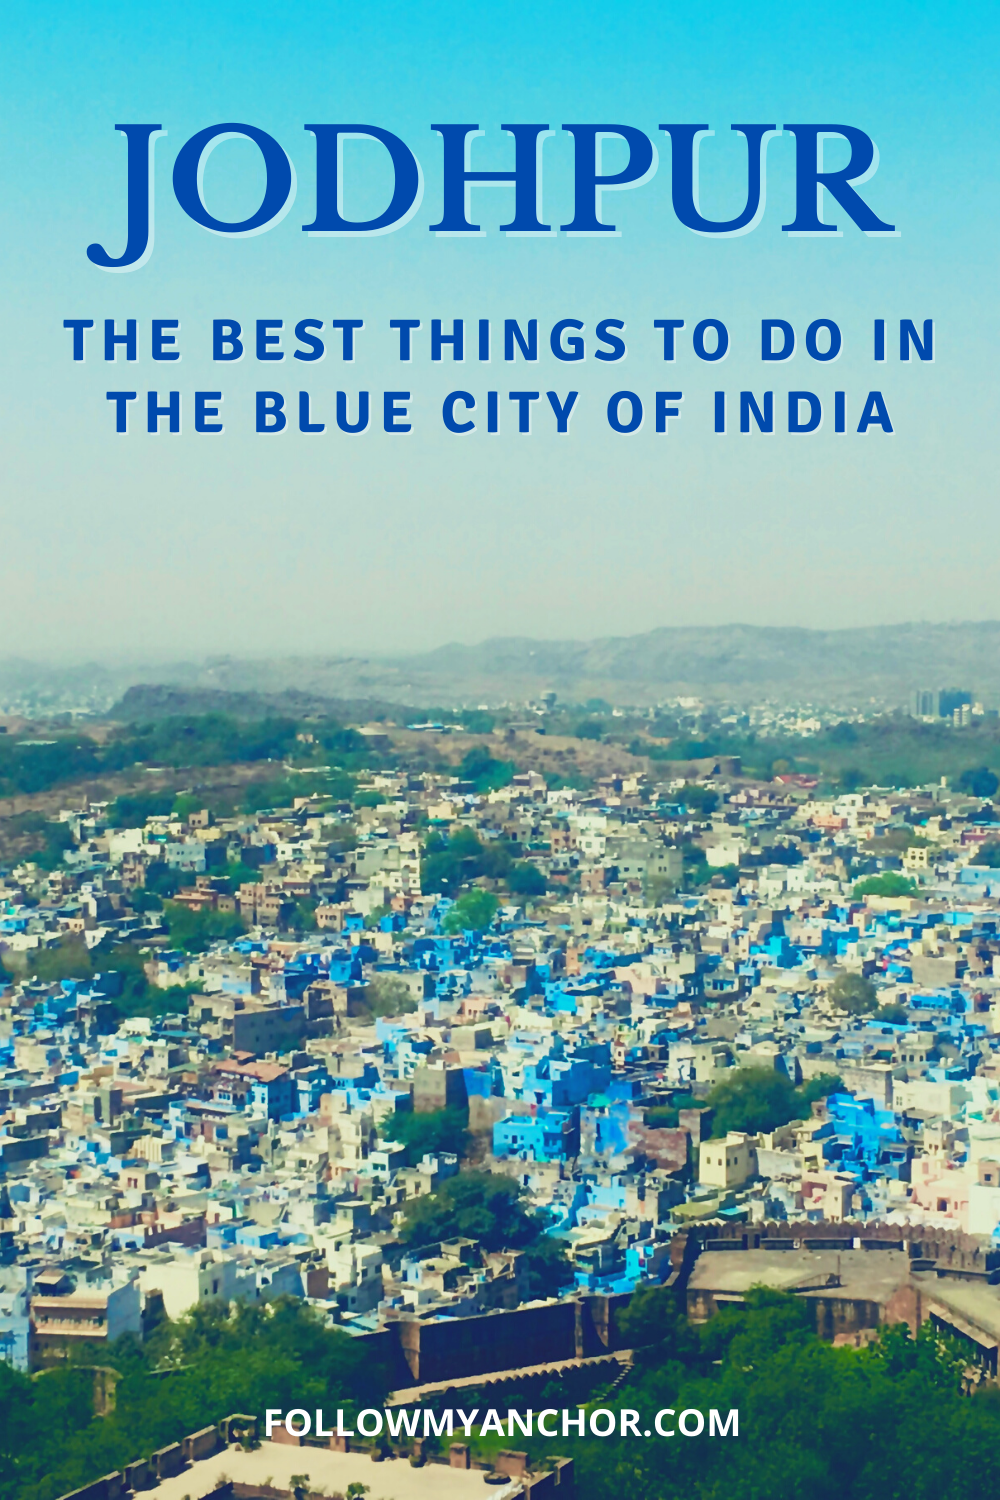 JODHPUR: THE BEST THINGS TO DO IN THE BLUE CITY OF INDIA